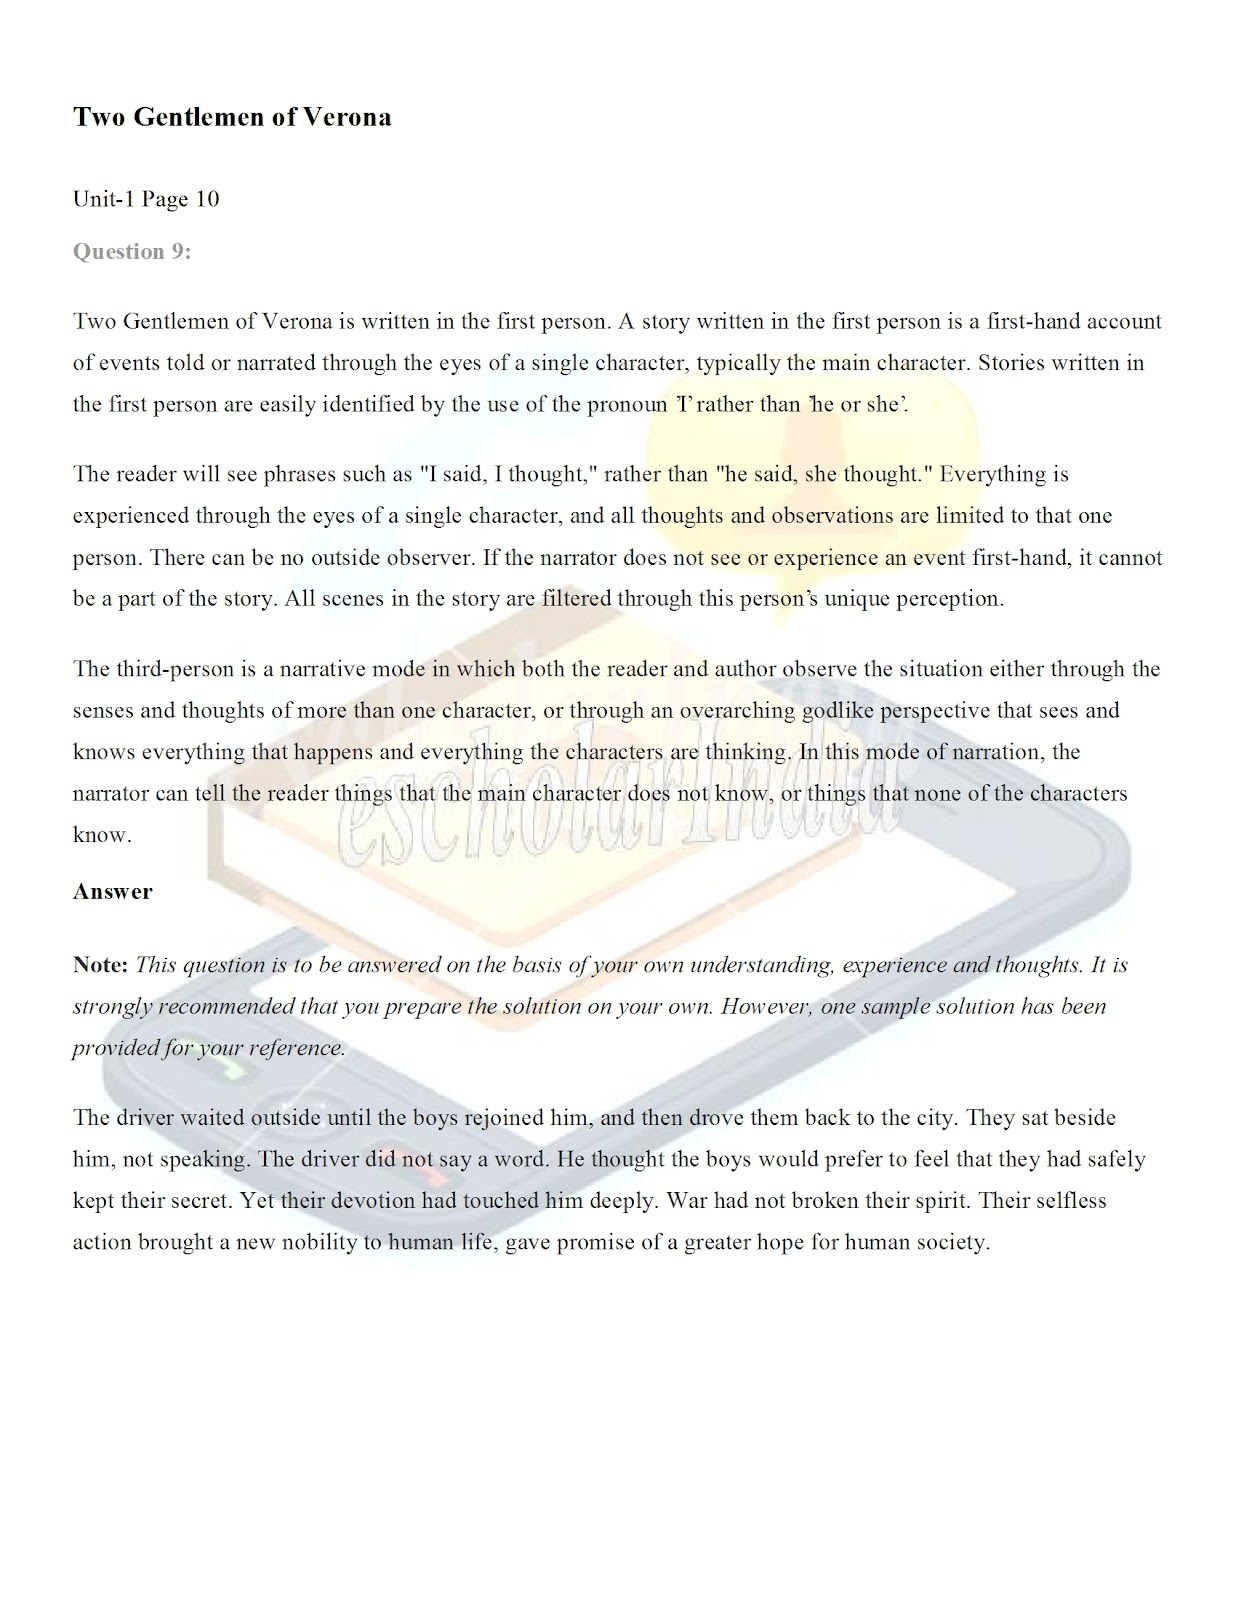 thesis paper chapter   ASU Graduate Education   Arizona State University Chapter    Introduction to the Study     Background to the study     Problem statement